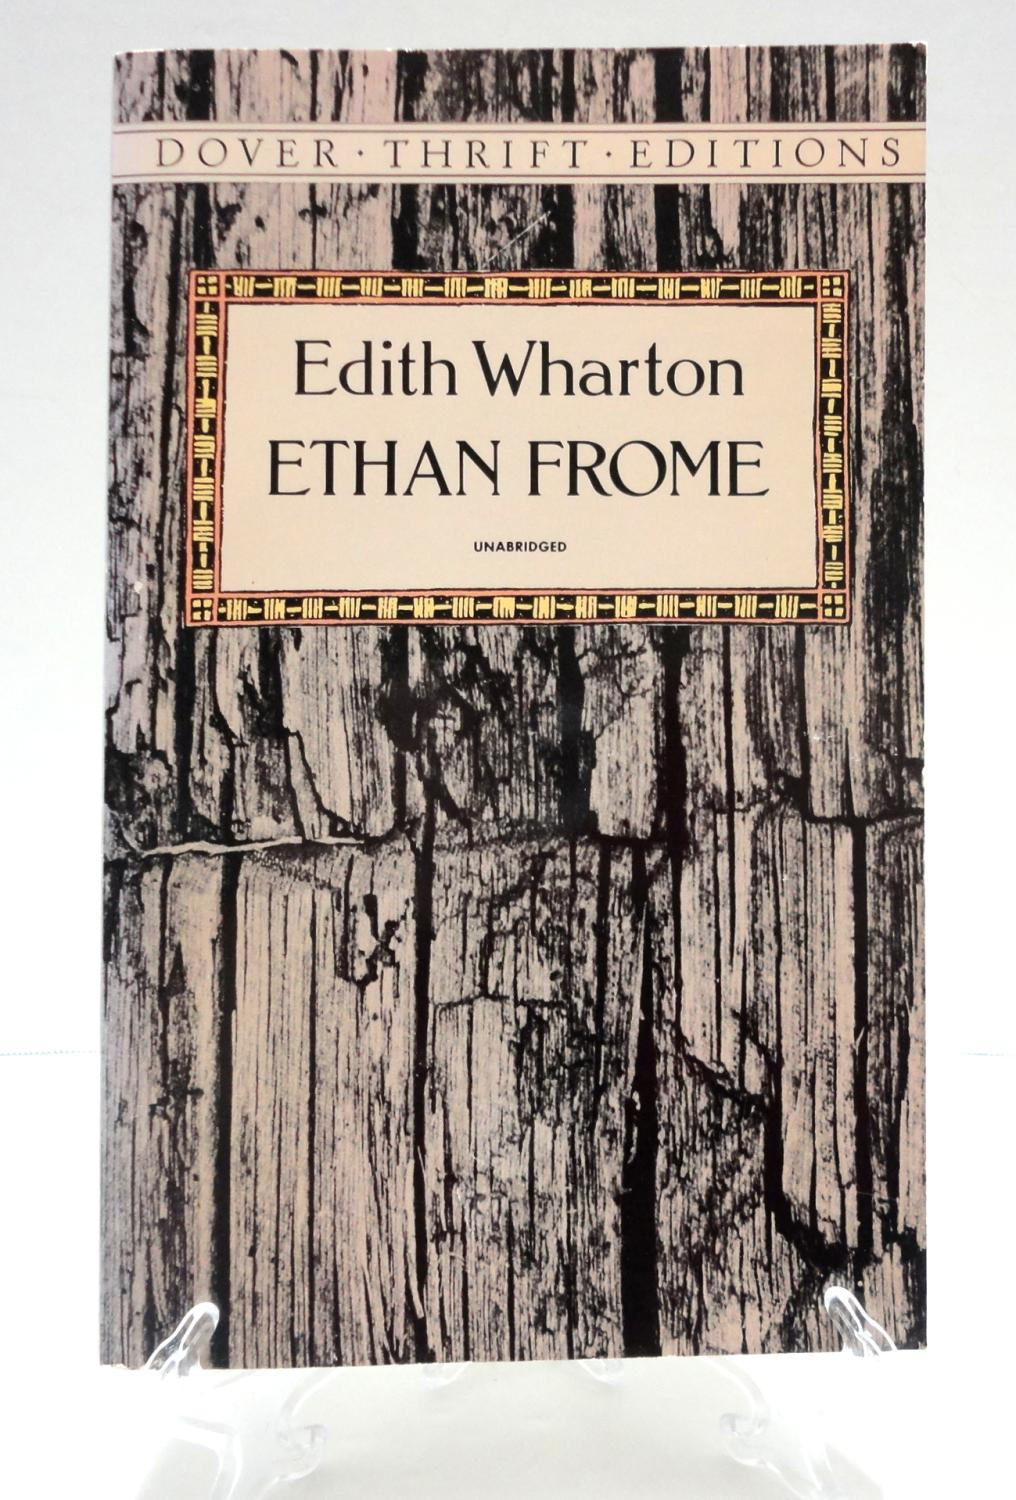 ethan frome by edith wharton abebooks